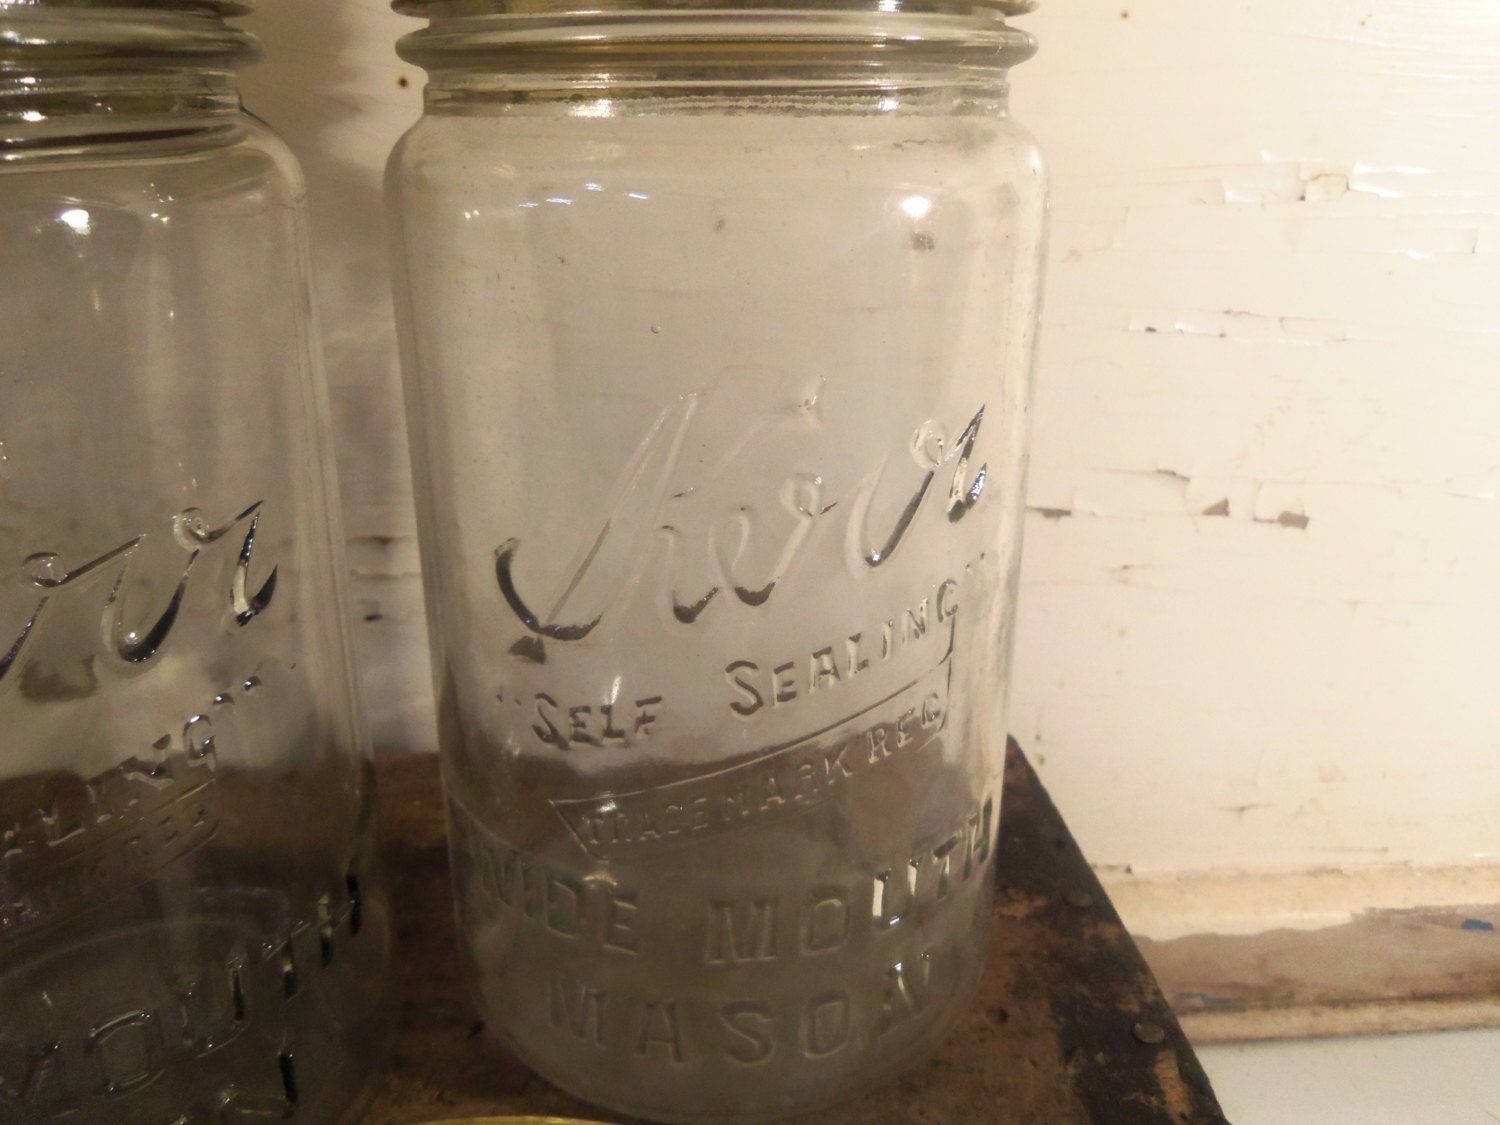 How to Find the Date of a Kerr Fruit Jar